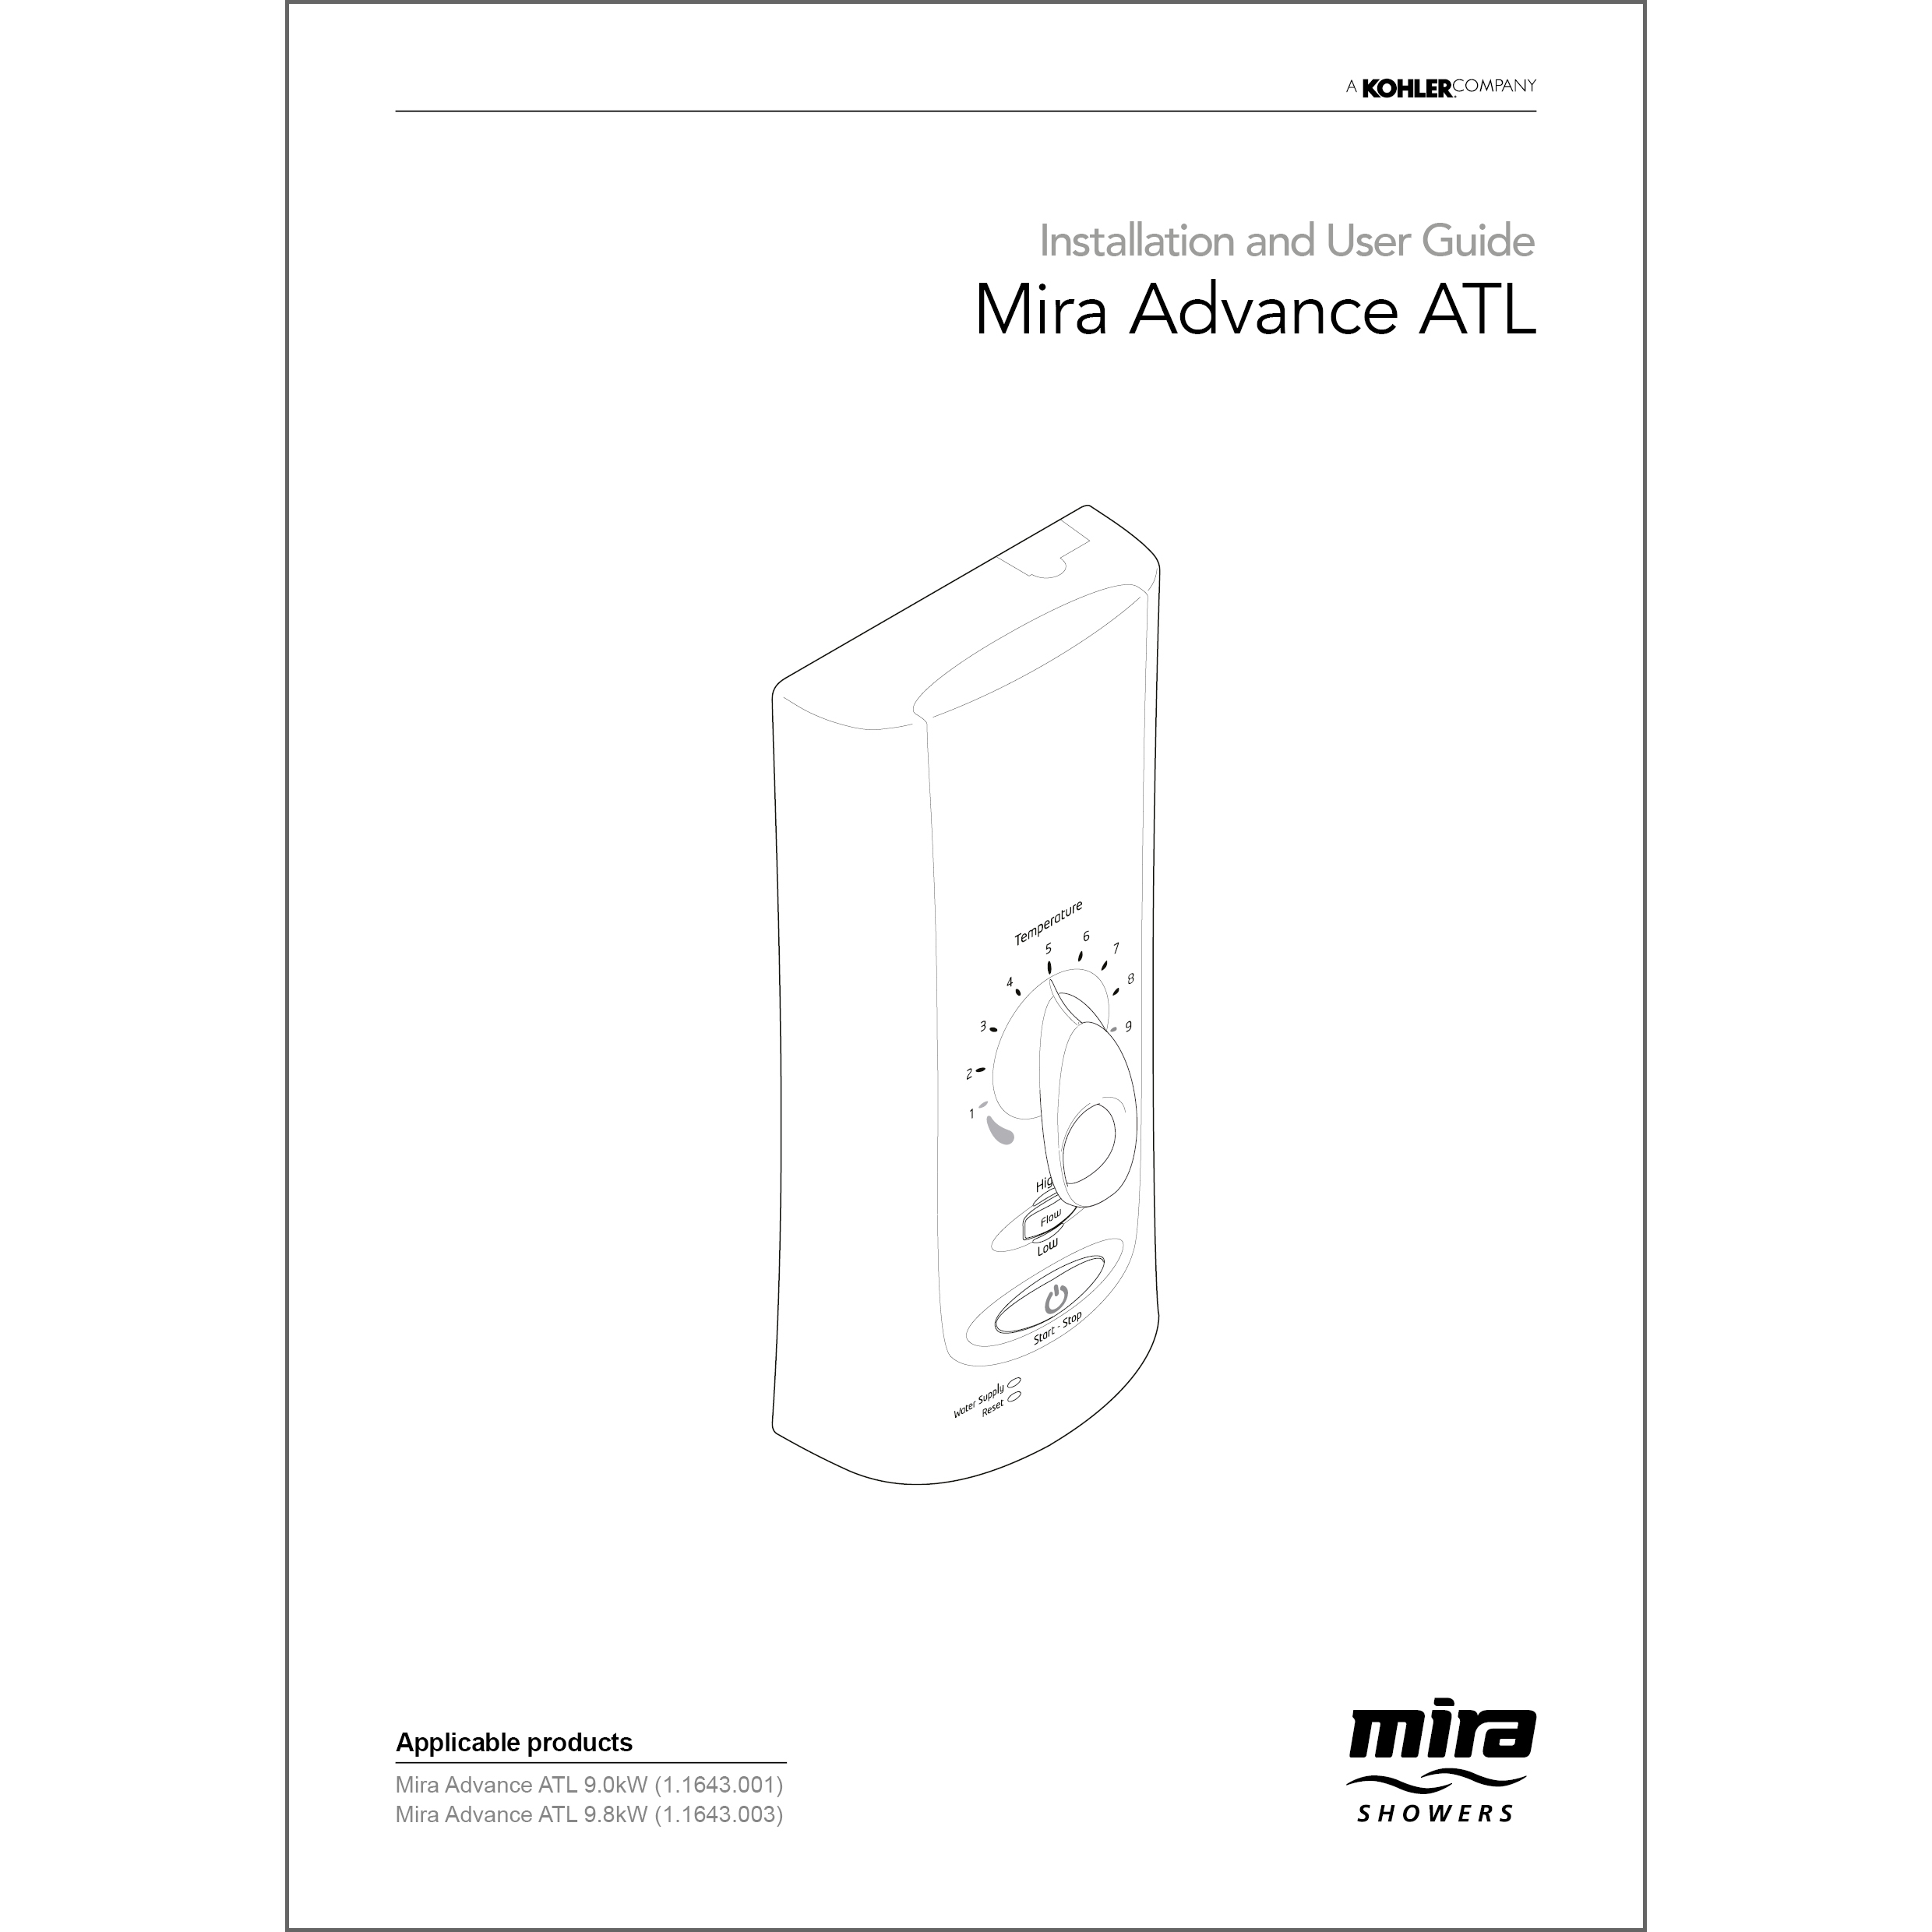 Mira Advance Wiring Diagram Experience Of Electric Shower Installation And User Guide By Showers Rh Mirashowers Co Uk Hps Ballast Electrical